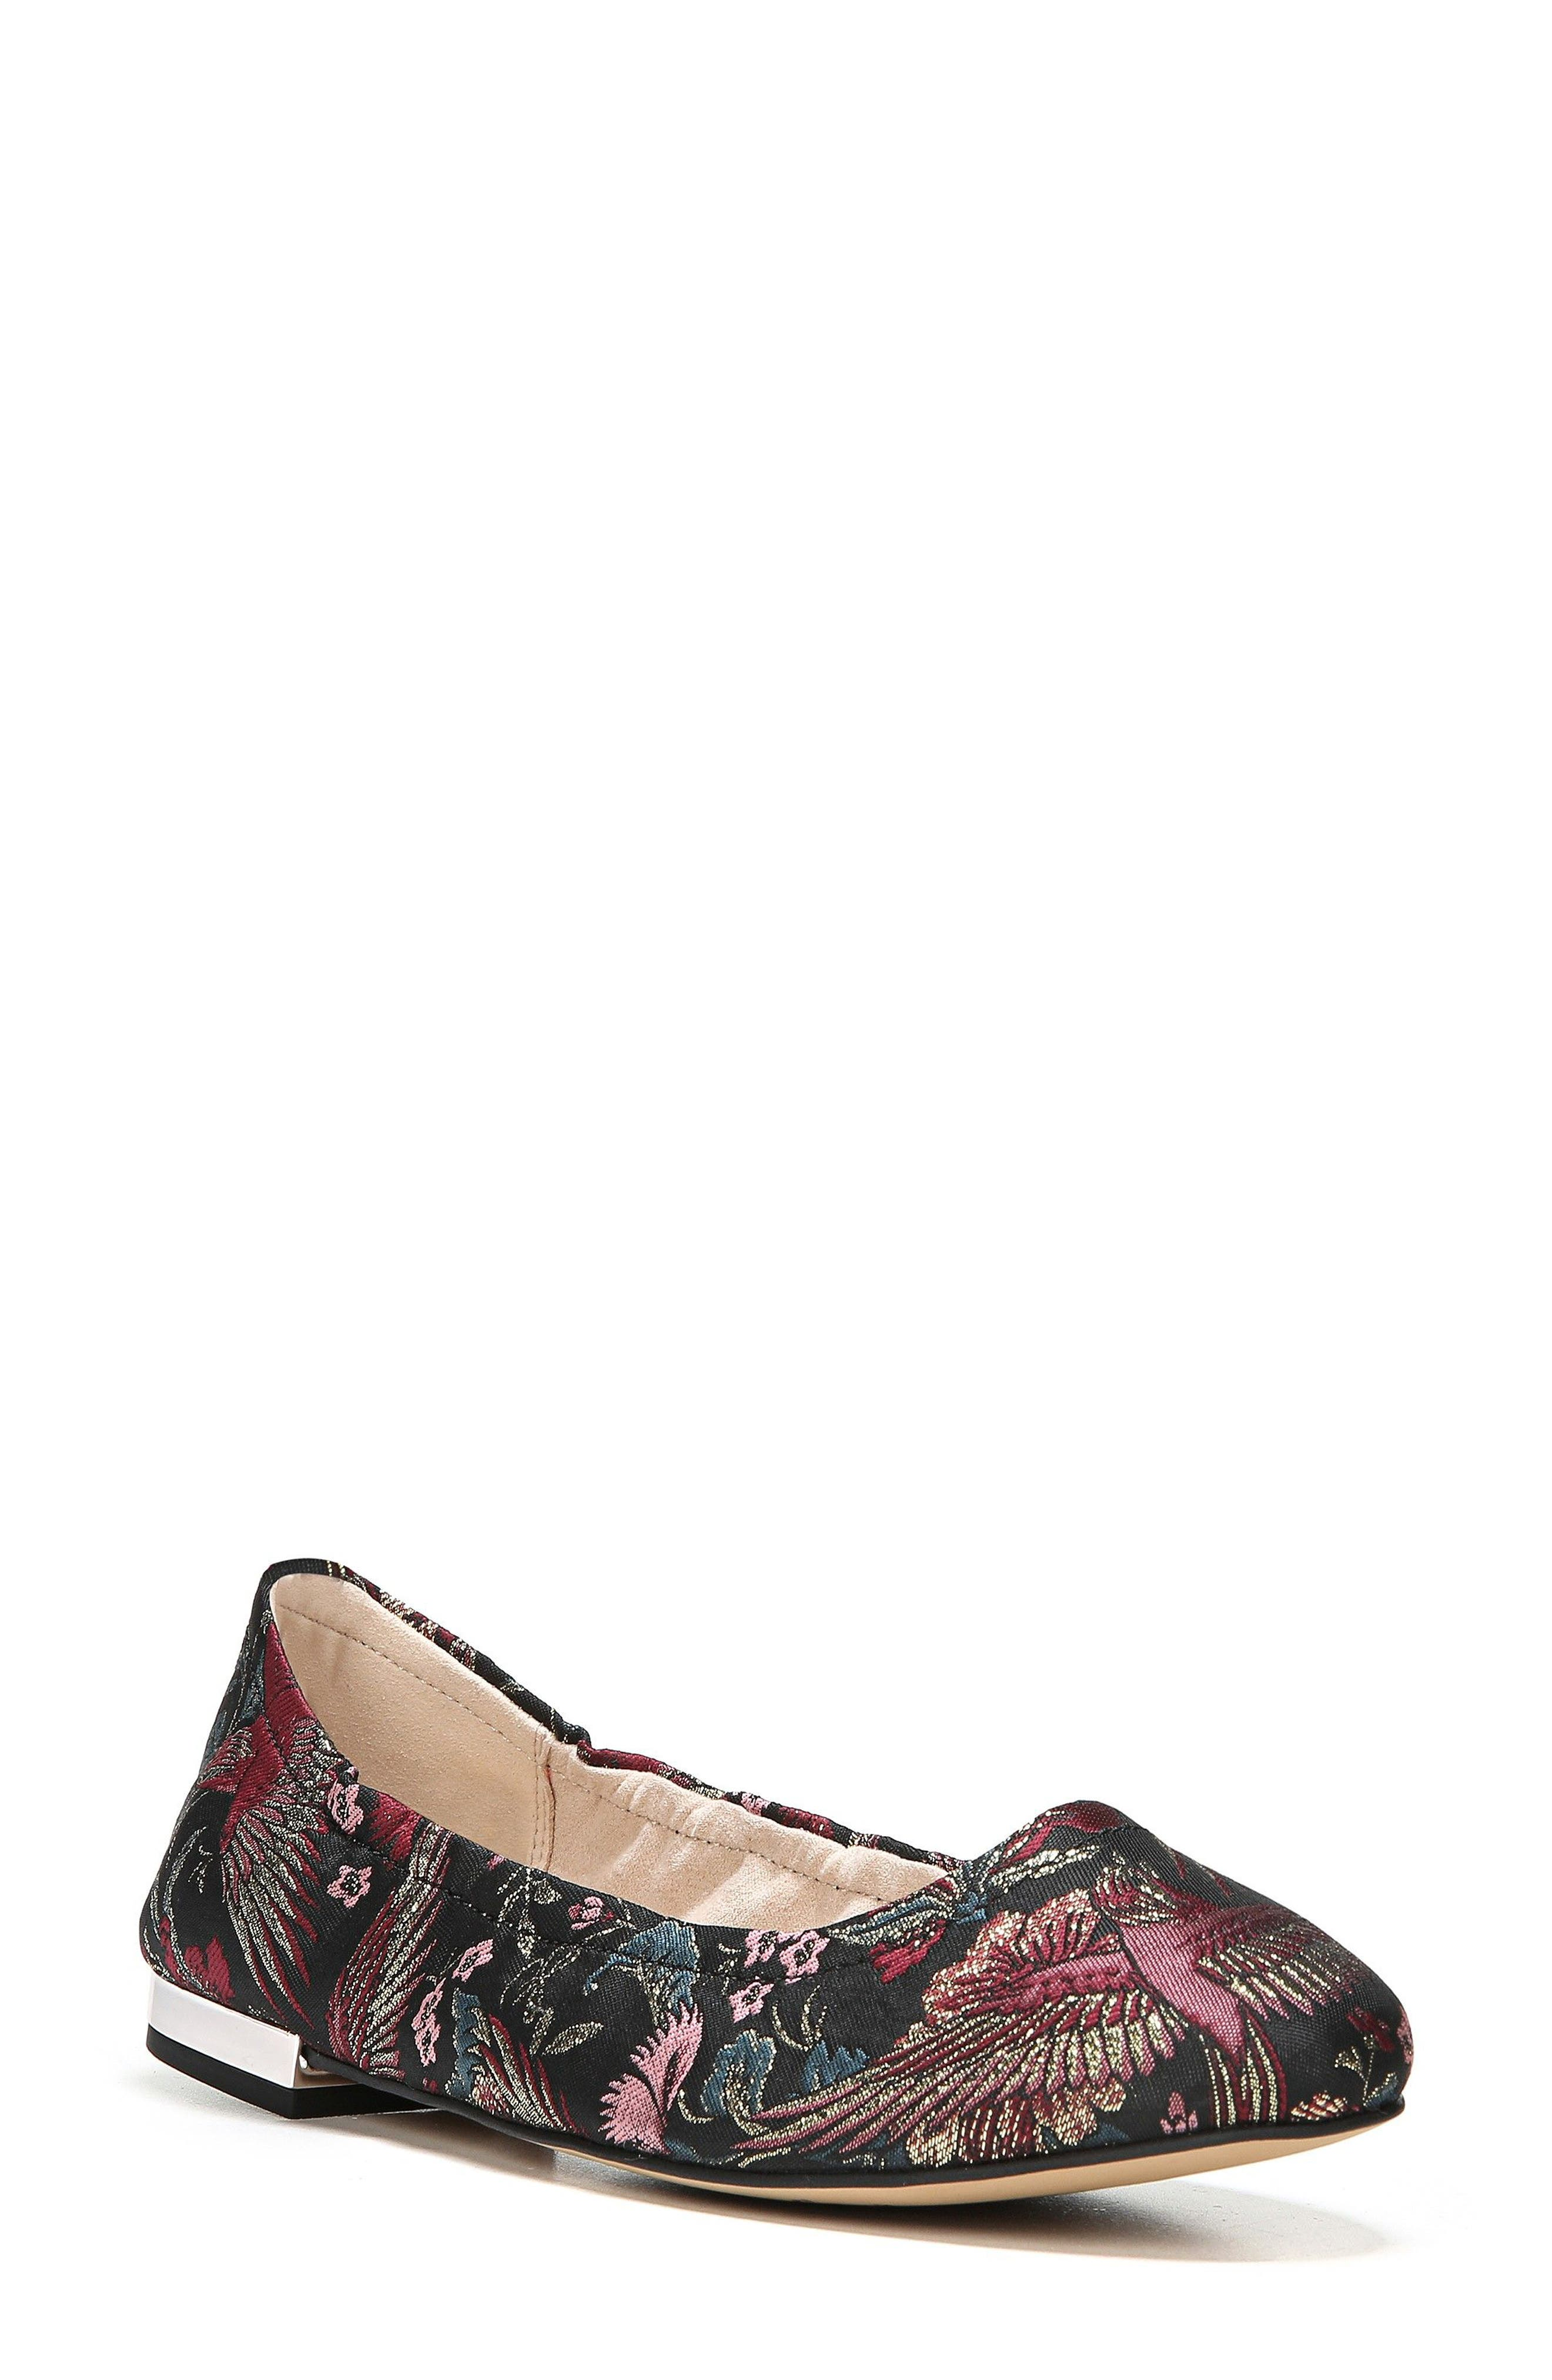 SAM EDELMAN Farrow Flat, Main, color, 001